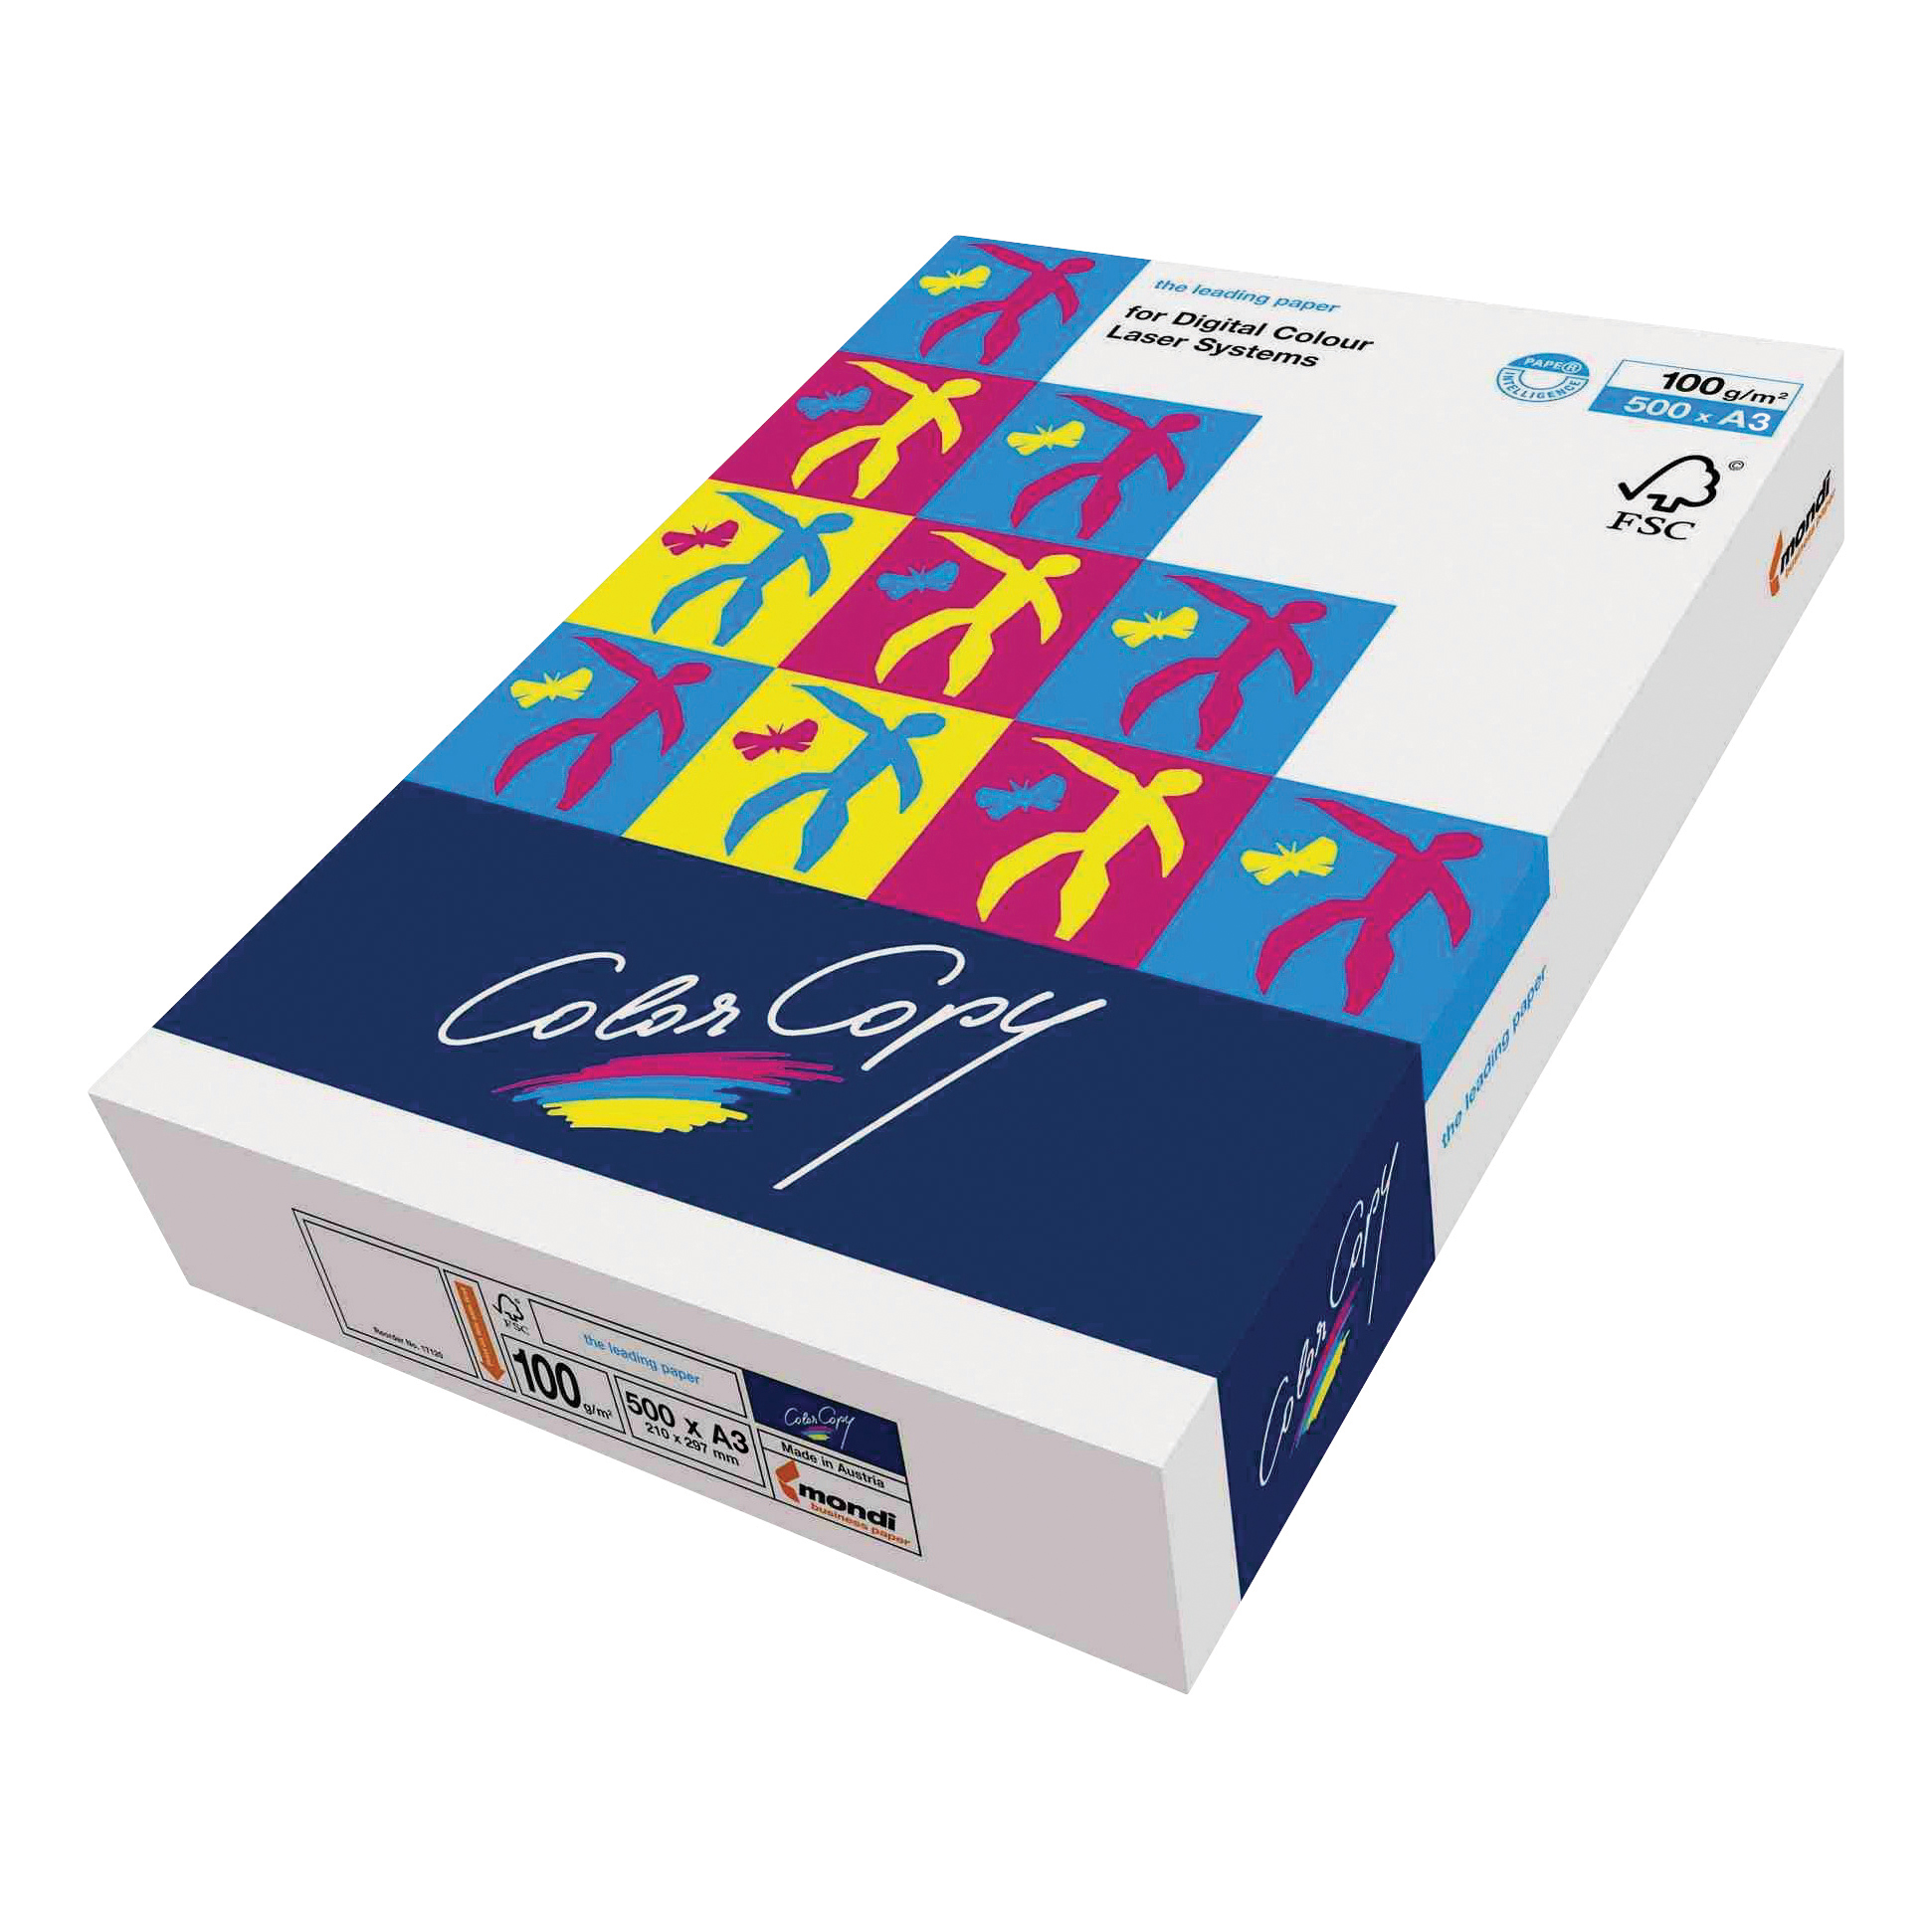 A3 Color Copy Paper Premium Super Smooth FSC Ream-Wrapped 100gsm A3 White Ref CCW1024 500 Sheets